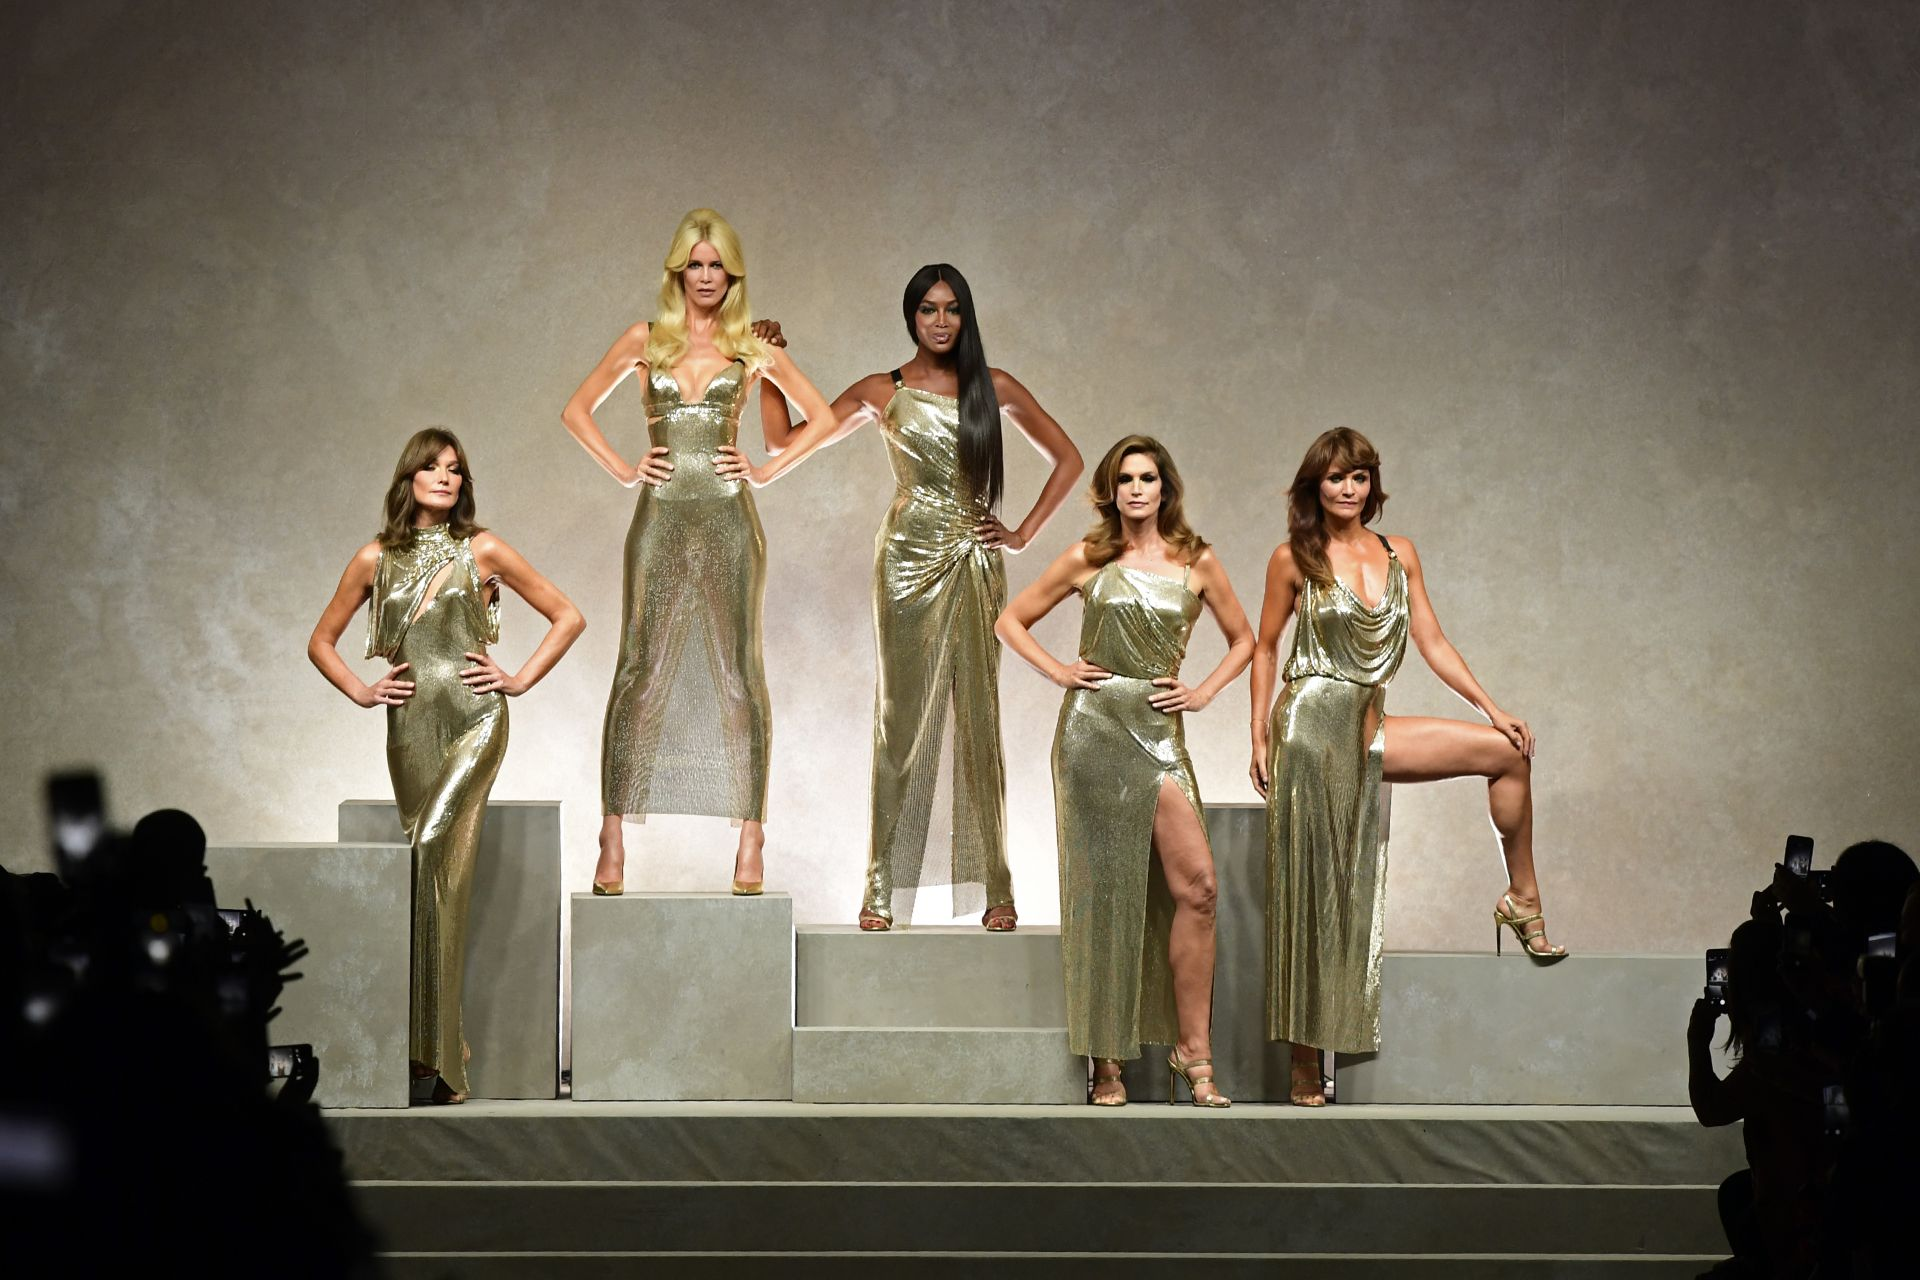 Top models (from left) Carla Bruni, Claudia Schiffer, Naomi Campbell, Cindy Crawford and  Helena Christensen pose at the end of the show for fashion house Versace during the Women's Spring/Summer 2018 fashion shows in Milan, on September 22, 2017. (Photo by Miguel MEDINA / AFP)